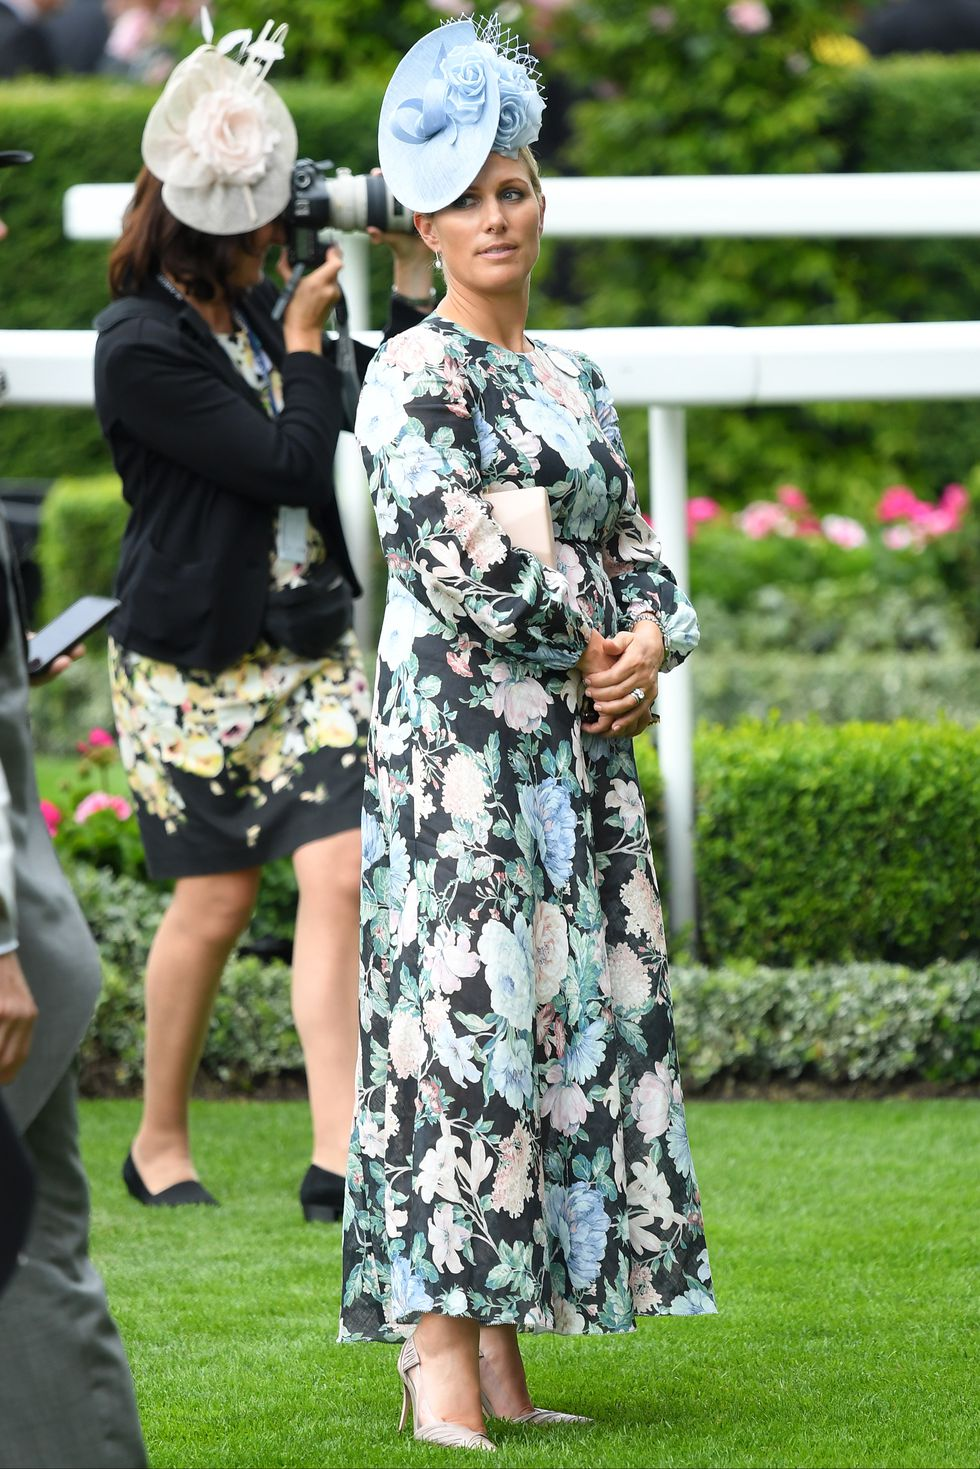 zara-phillips-attends-day-one-of-royal-ascot-at-ascot-news-photo-1156722630-1560870472.jpg